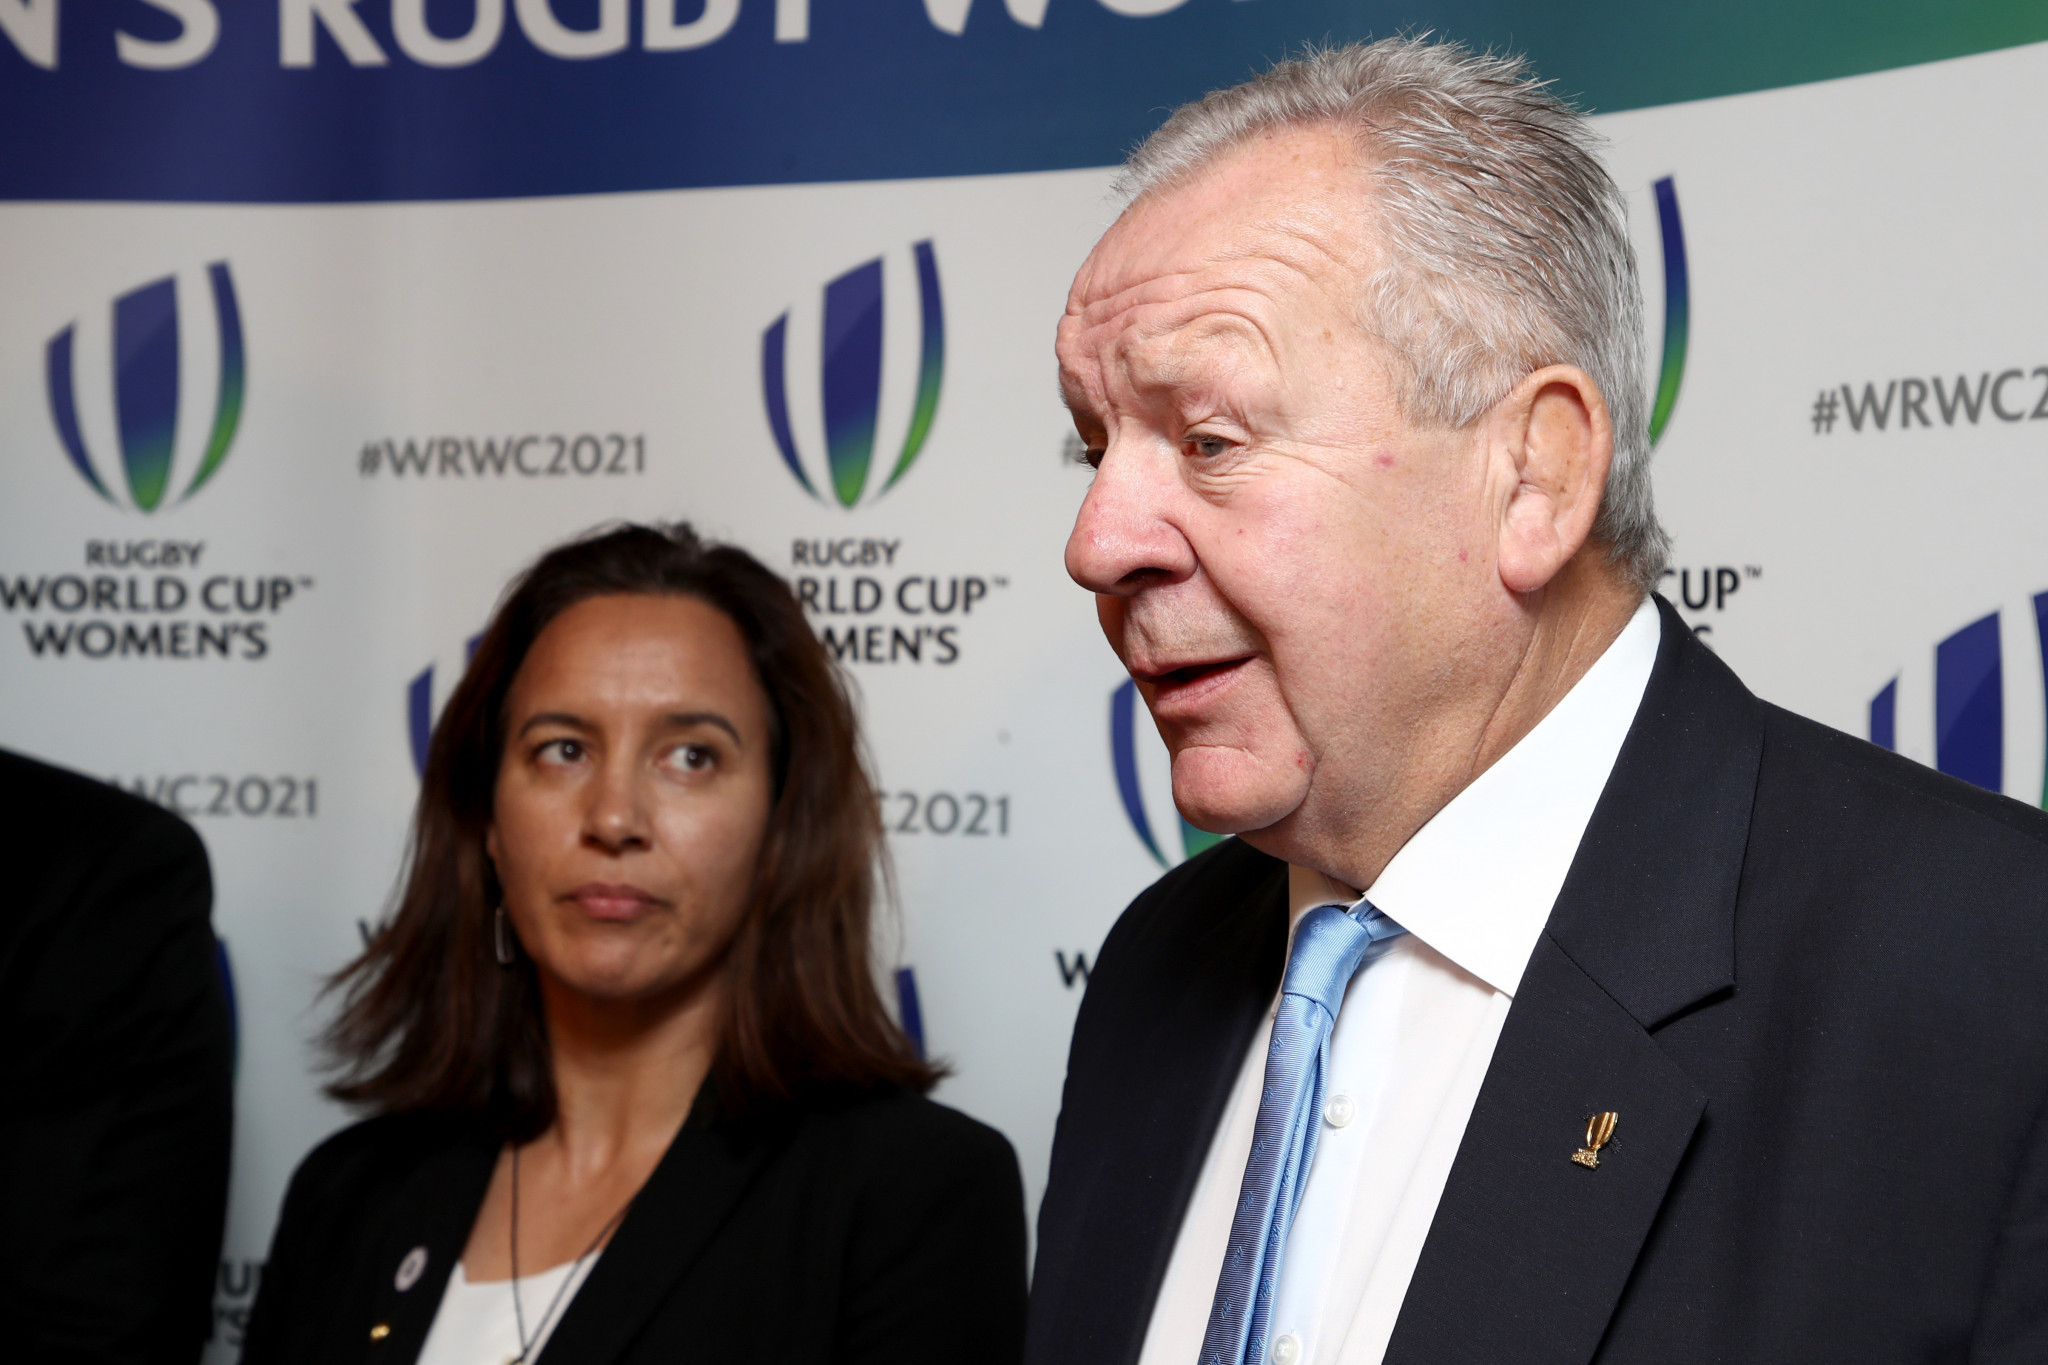 World Rugby chairman Sir Bill Beaumont congratulated the recipients of the scholarships ©Getty Images